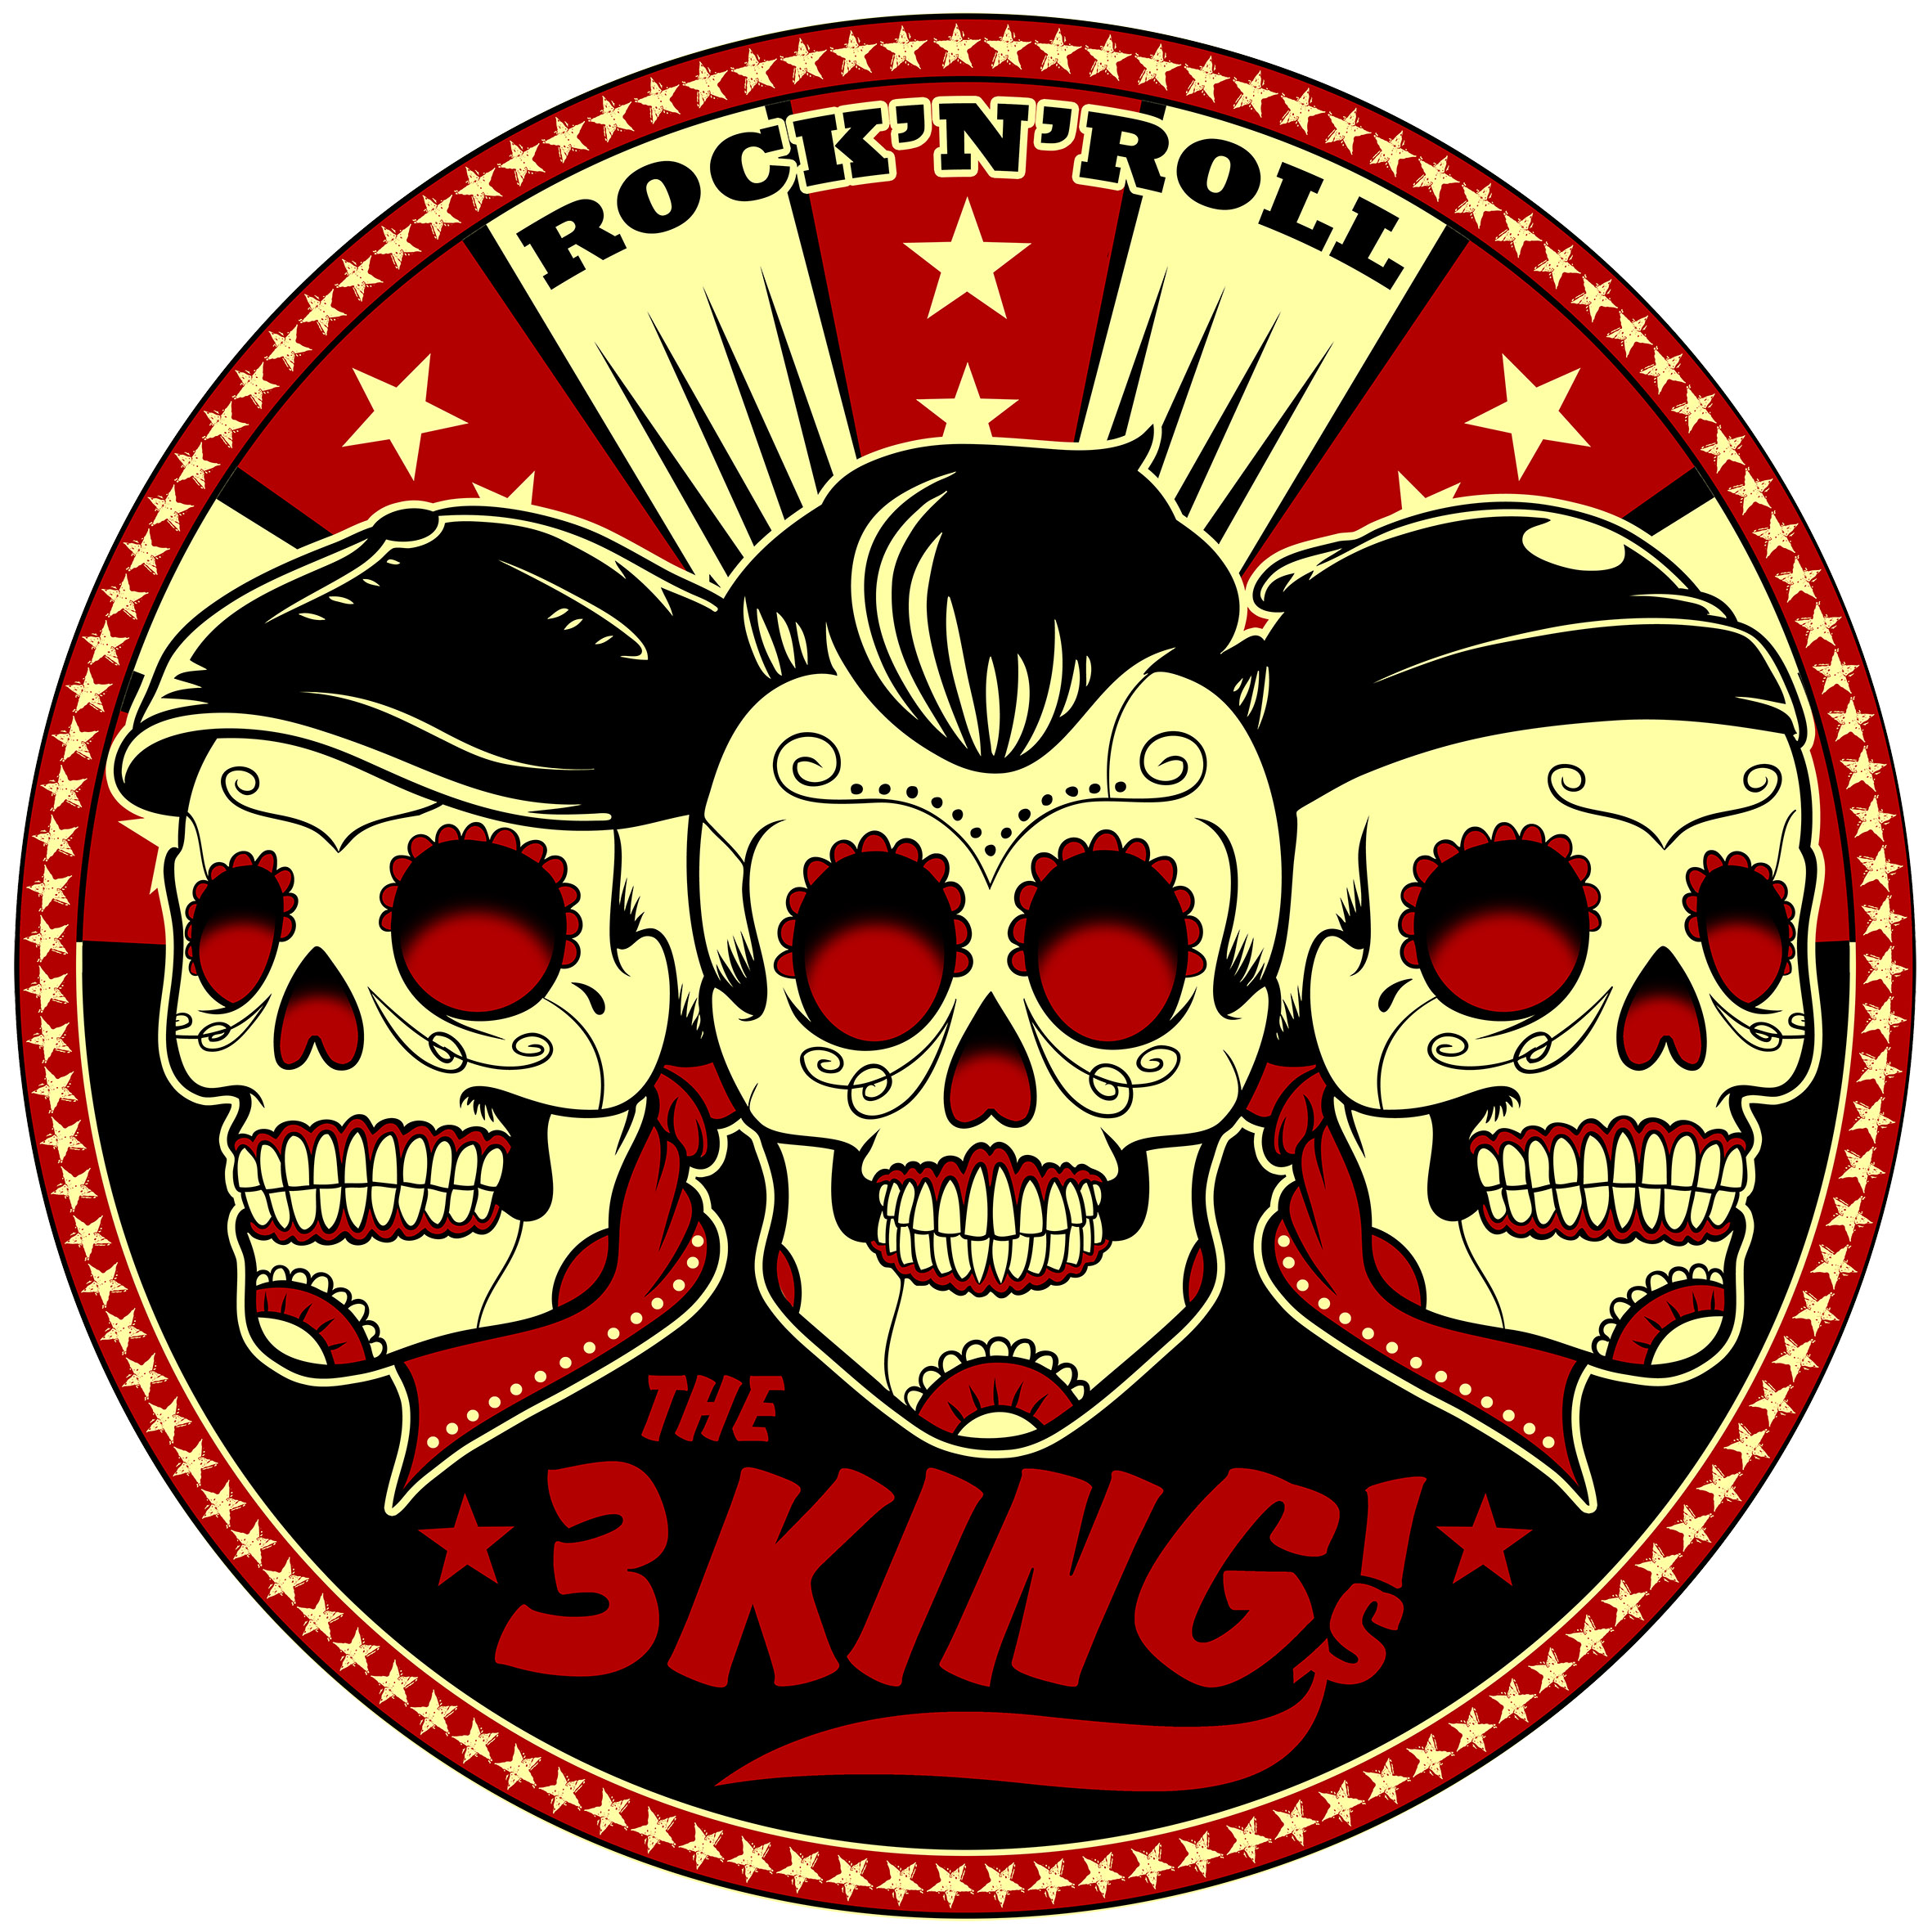 3Kings_Logo